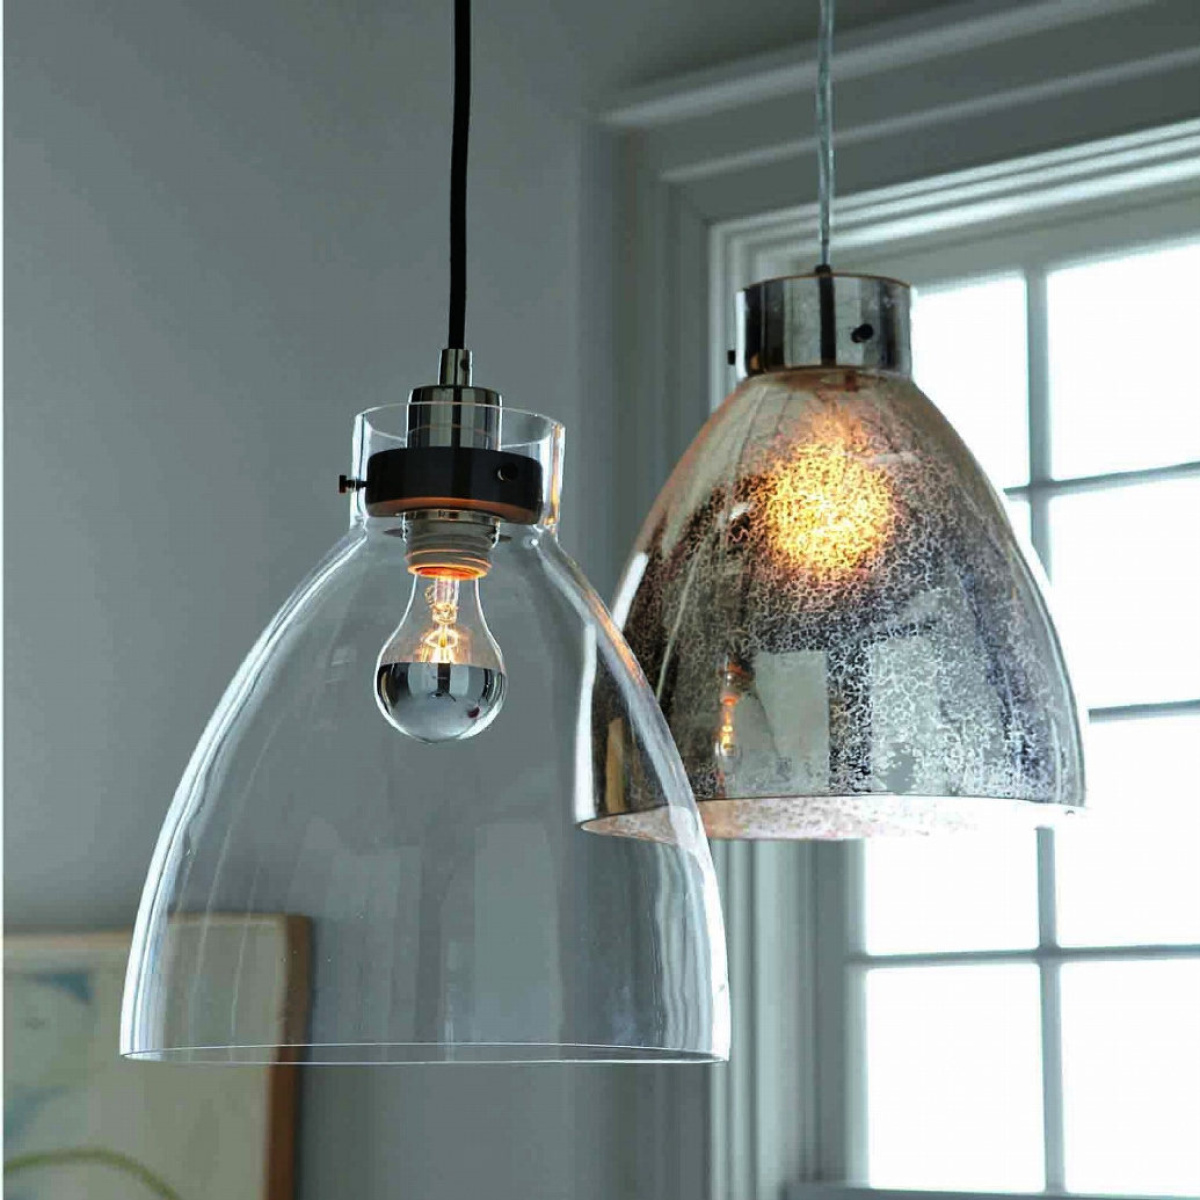 Industrial Chic Lighting Mixing Raw Industrial Design With Comfy Traditional Home